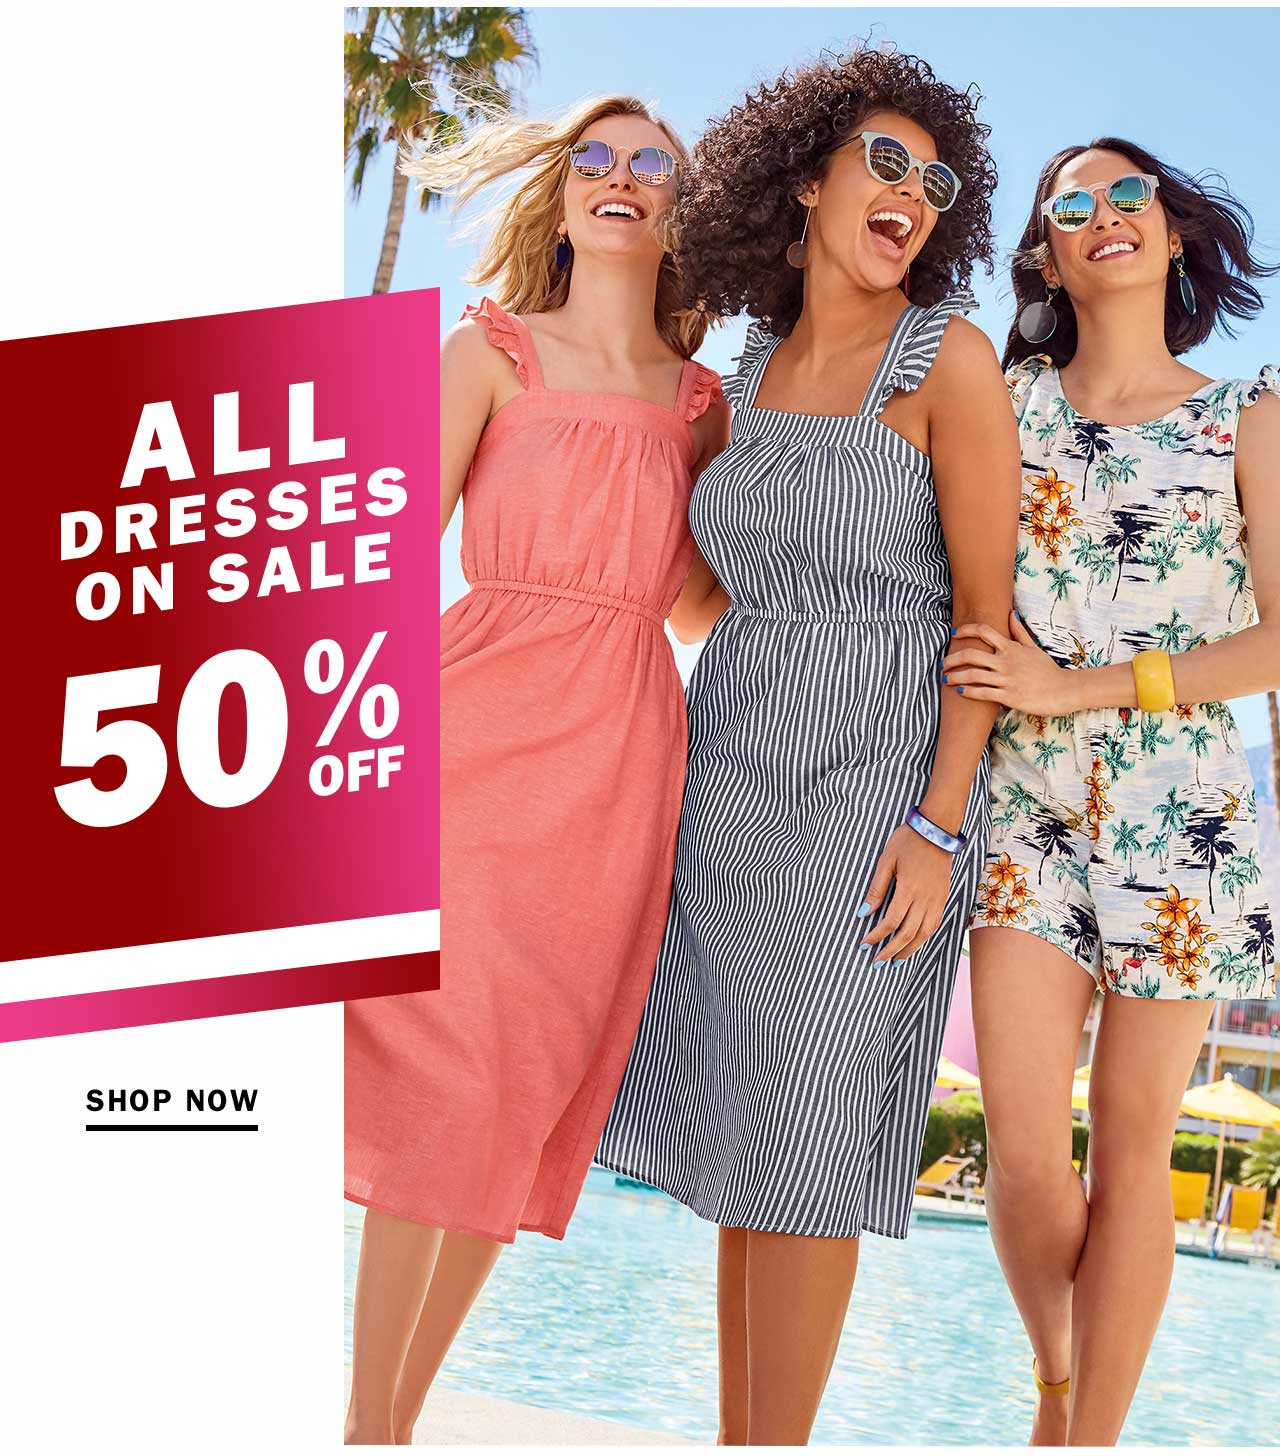 ALL DRESSES ON SALE 50% OFF | SHOP NOW